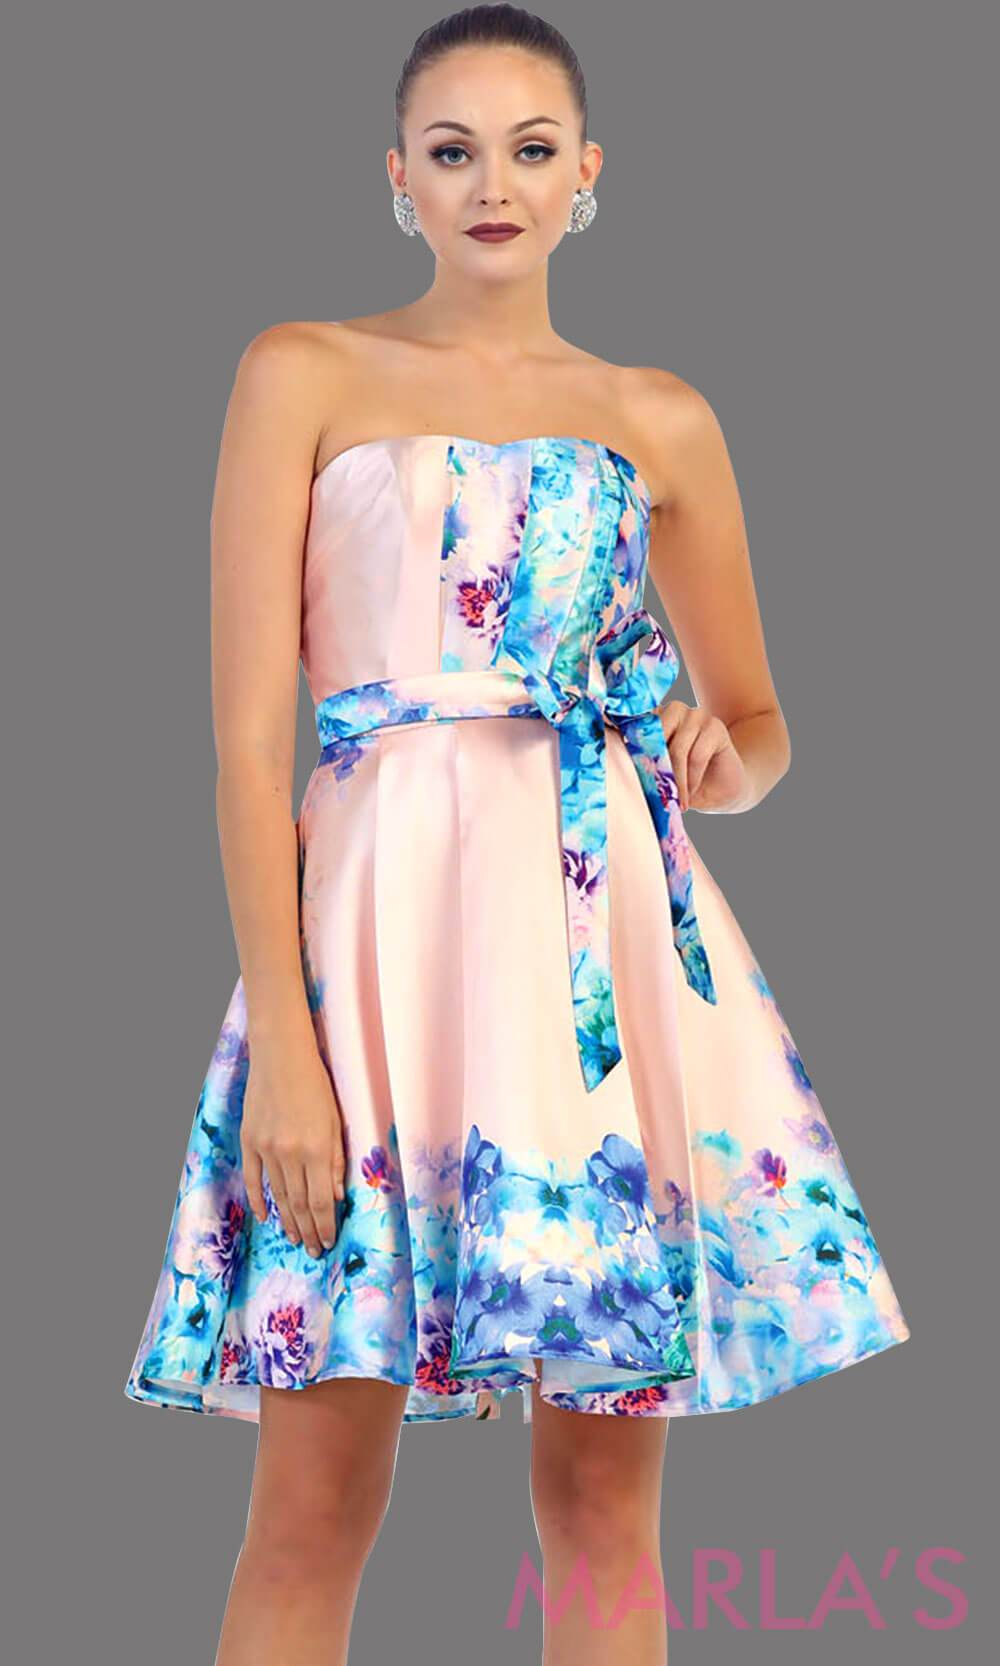 Short floral satin dress with strapless neckline. This is a beautiful pink grade 8 grad dress, semi formal, wedding guest dress, or even semi formal. Available in plus sizes